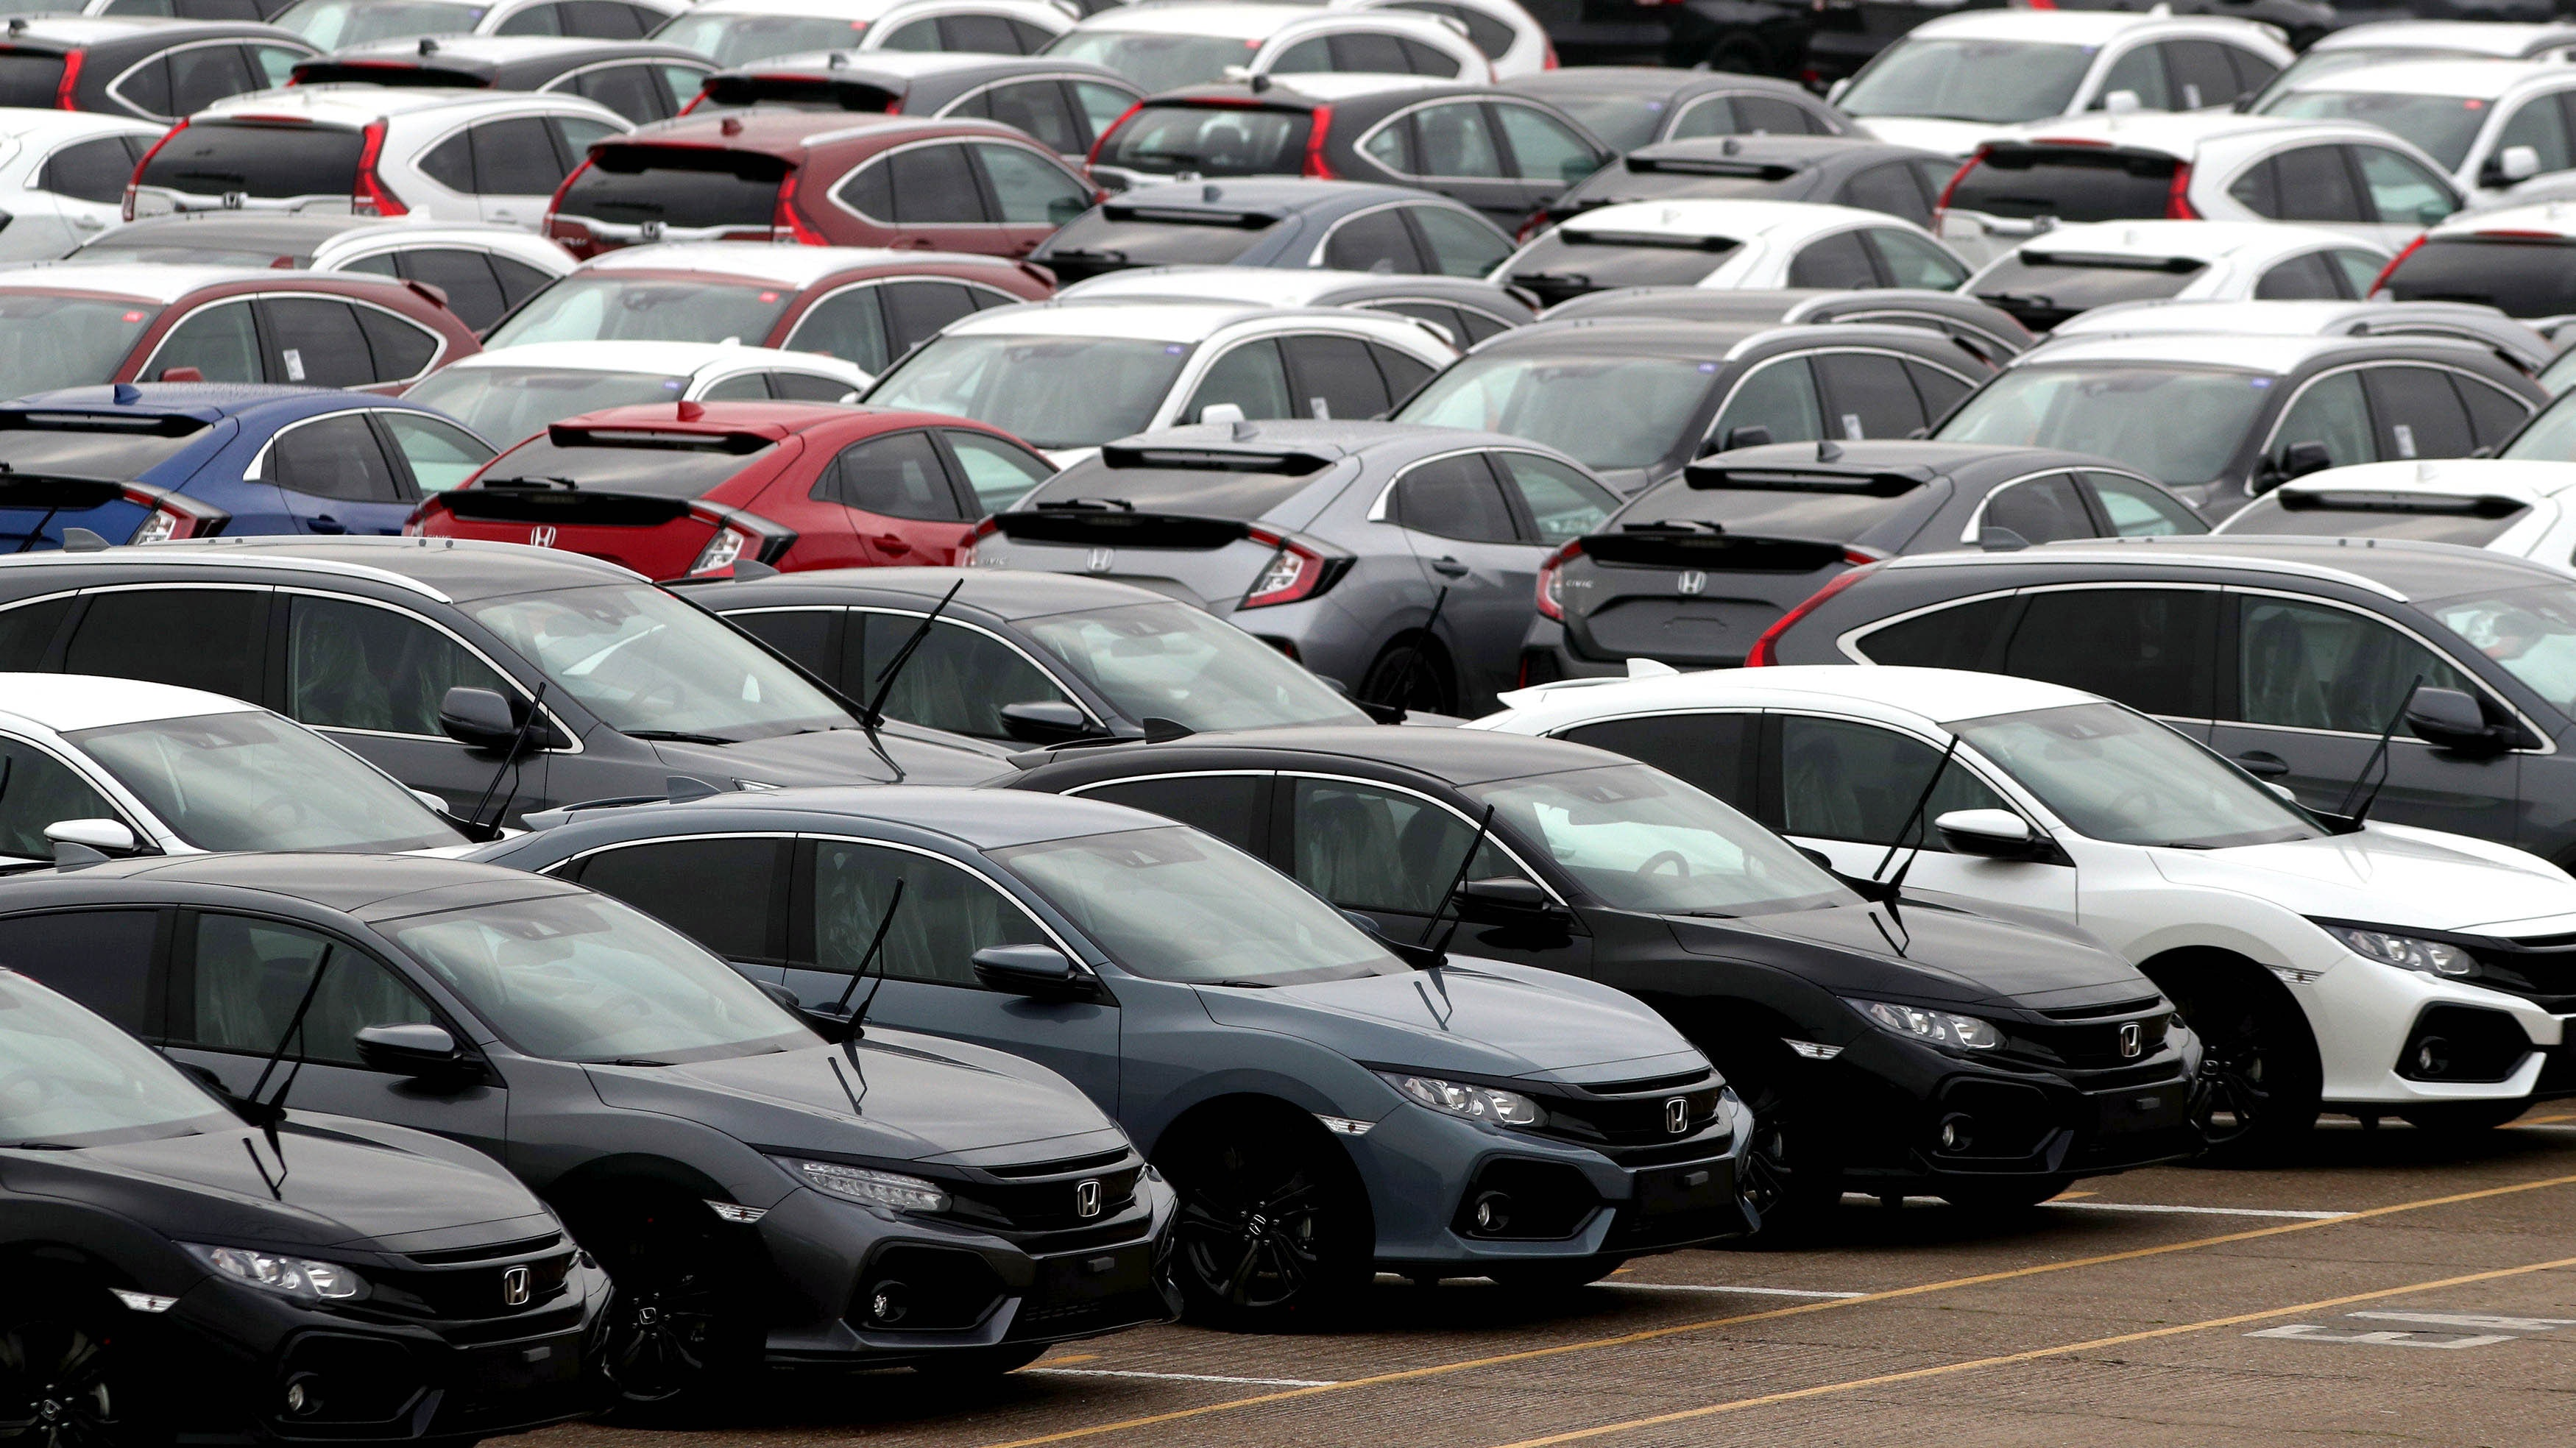 United Kingdom new vehicle sales record biggest fall since financial crisis